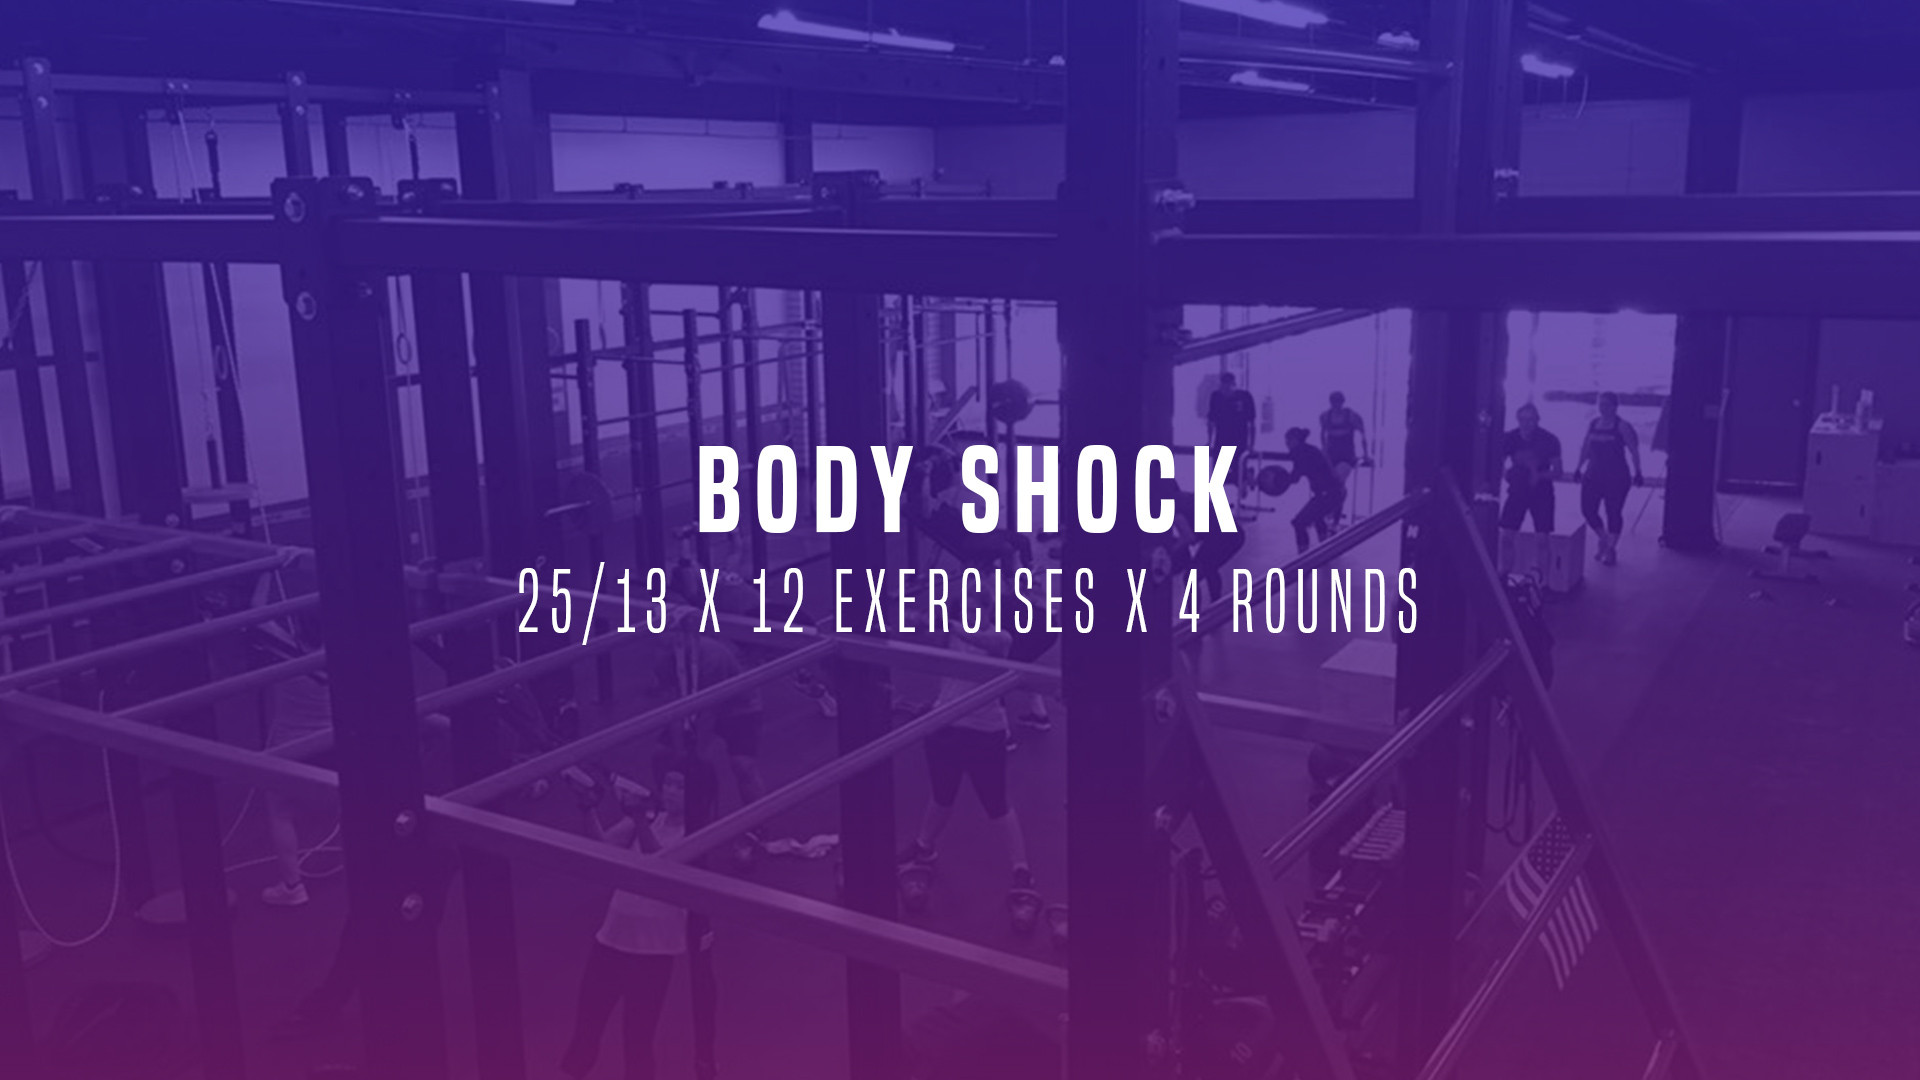 WOD 4: Body Shock 25/13 x 12 Exercises x 4 Rounds